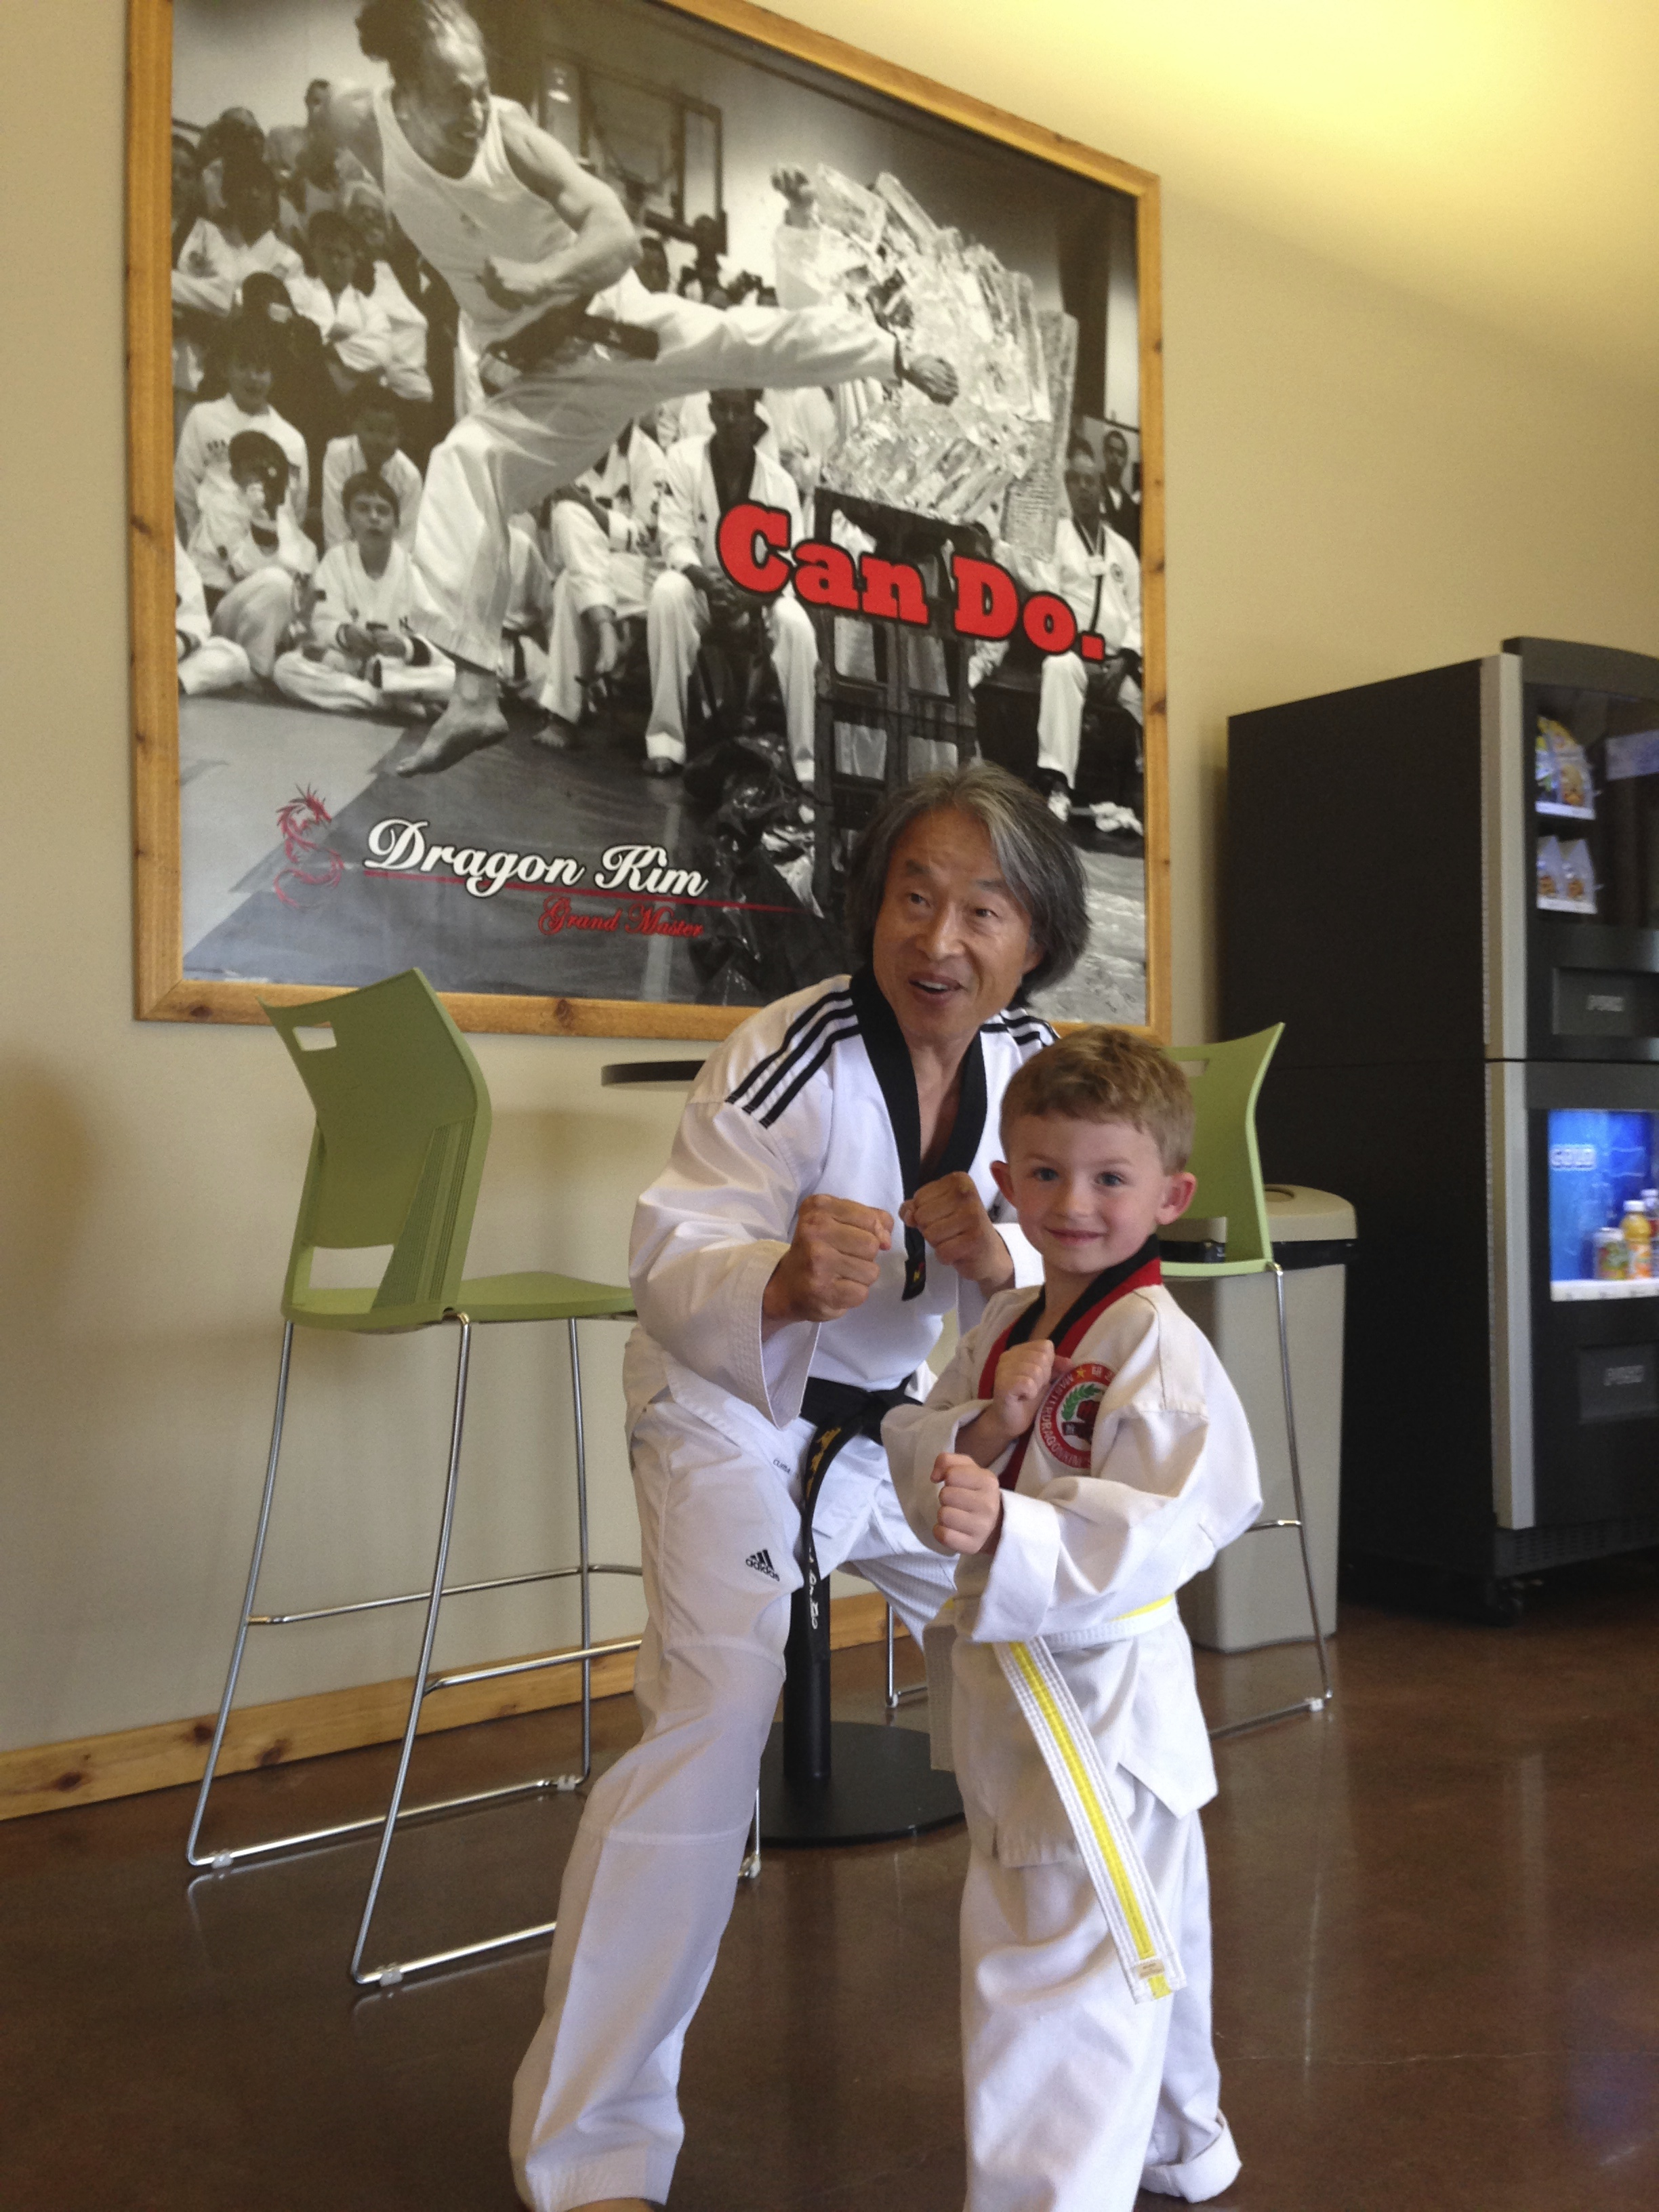 Free Trial Class - Available for all ages!Arrive 15 minutes early, no pre-registration required.Monday-Thursday4-6 yrs- 4:00-4:50 PM7 & up- 5:00-5:50 PM; 6:00-7:00 PM14 & up- 7:00-8:00 PMAdult Self Defense/Taekwondo11AM-12PM- Tuesday & Thursday